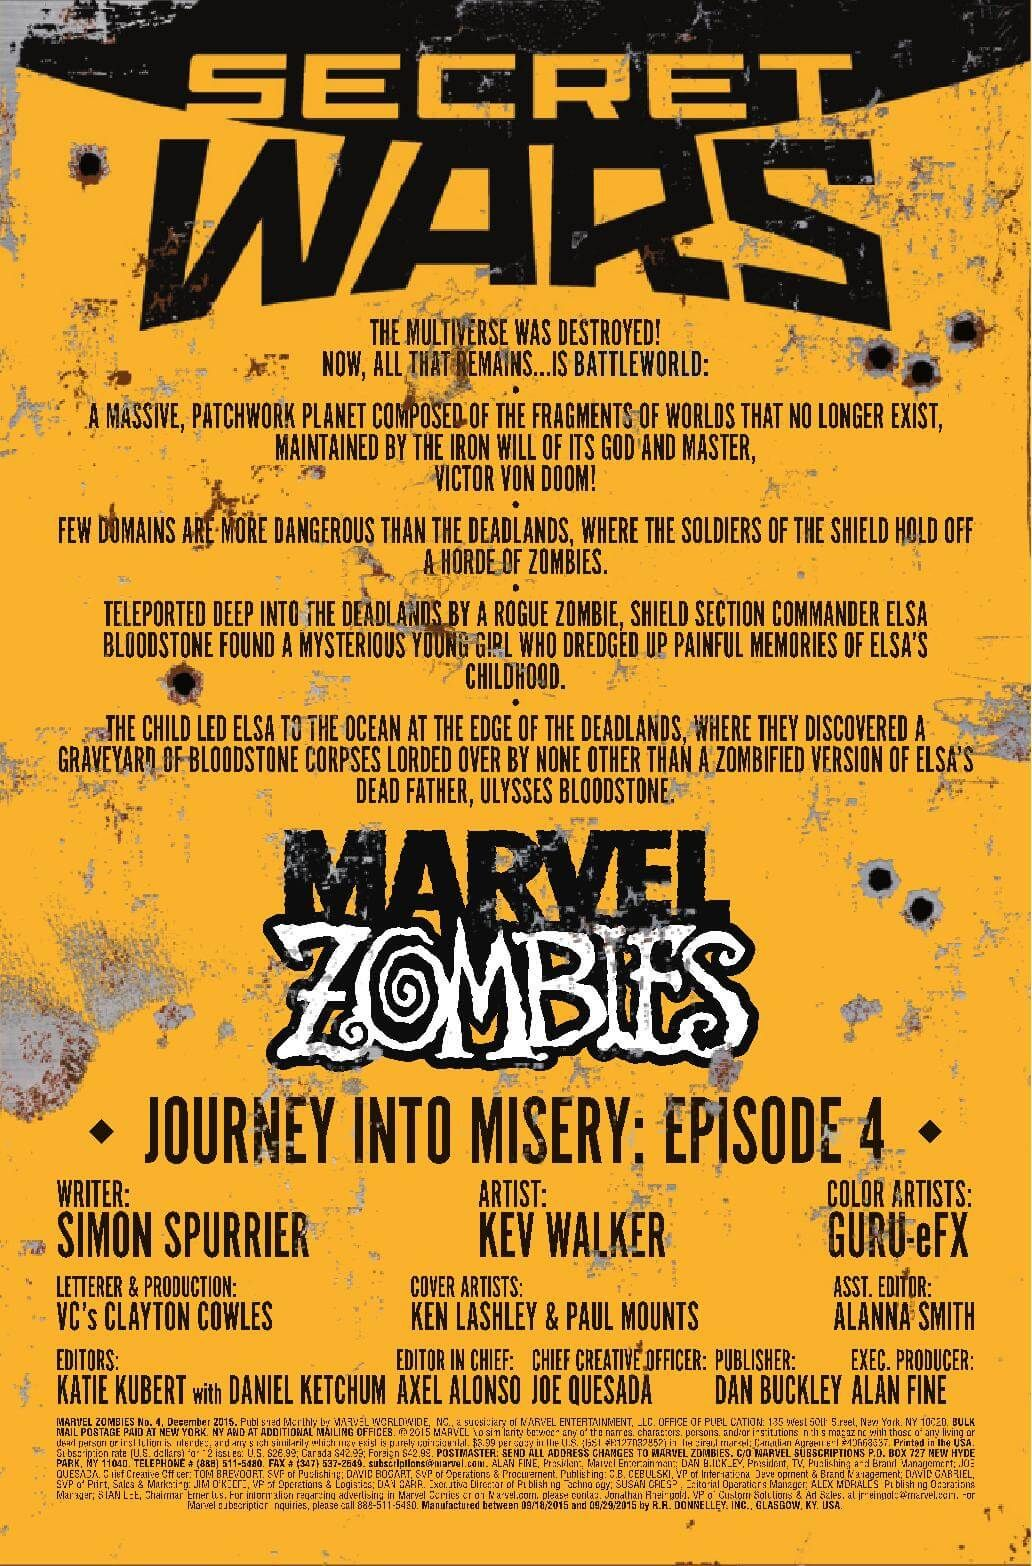 Preview: Marvel Zombies #4, Marvel Zombies #4 Story: Simon Spurrier Art: Kev Walker Cover: Ken Lashley Publisher: Marvel Publication Date: October 14th, 2015 Price: $3.99 ...,  #All-Comic #All-ComicPreviews #Comics #KenLashley #KevWalker #Marvel #MARVELZOMBIES #previews #SimonSpurrier